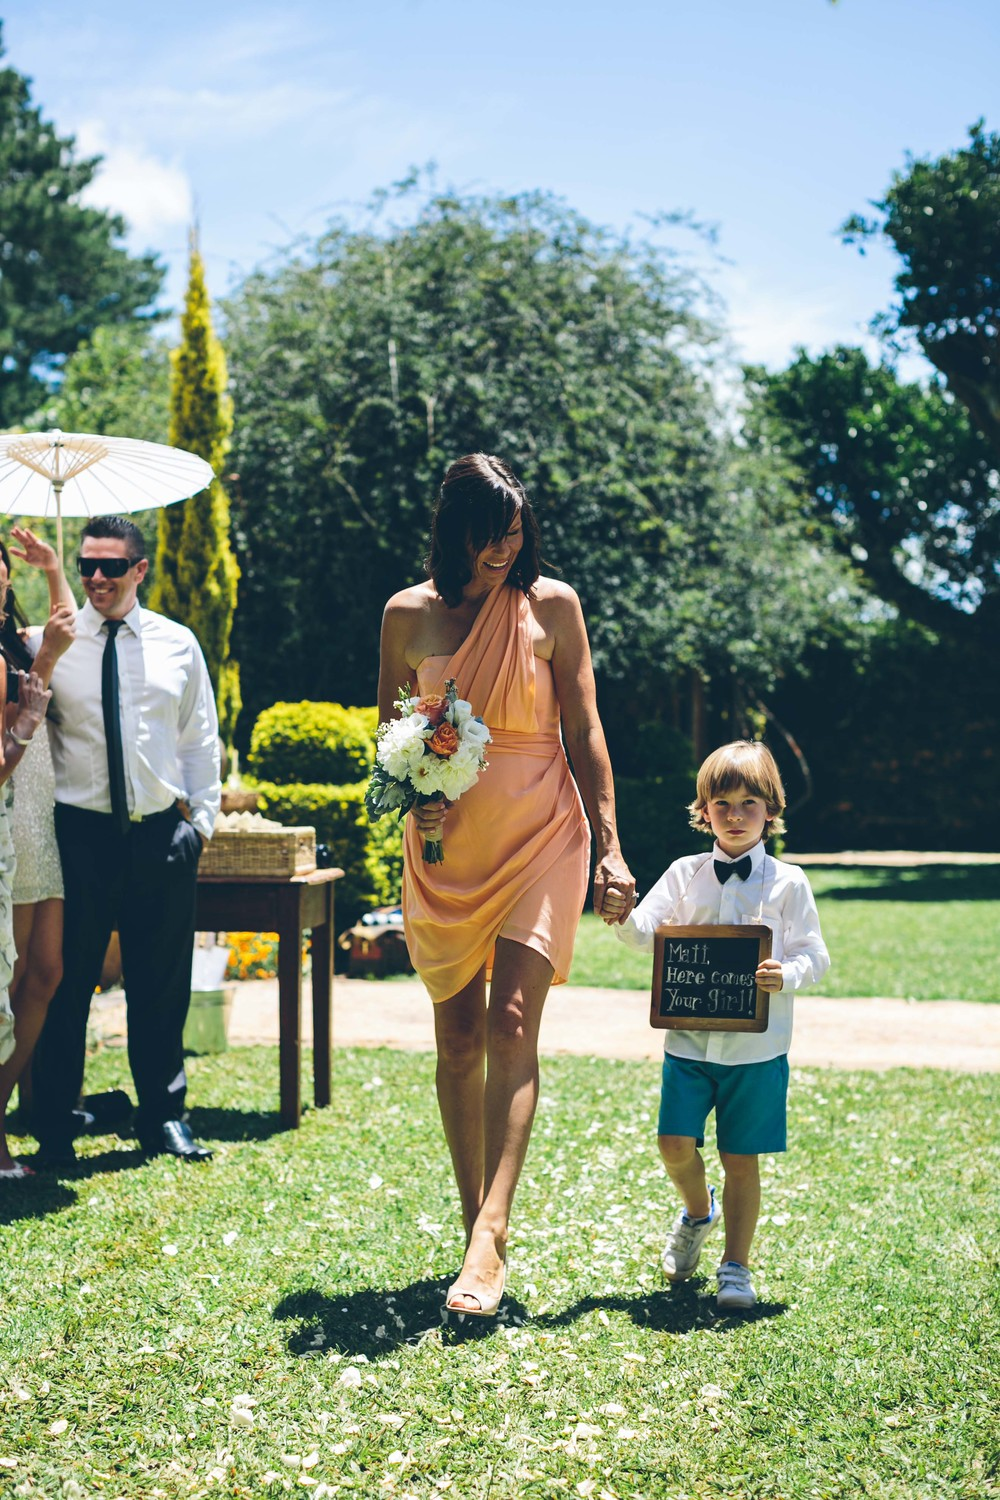 Debbie and Matt wedding, Deux Belettes, Byron Bay Hinterland by Milton Gan Photography 066.jpg